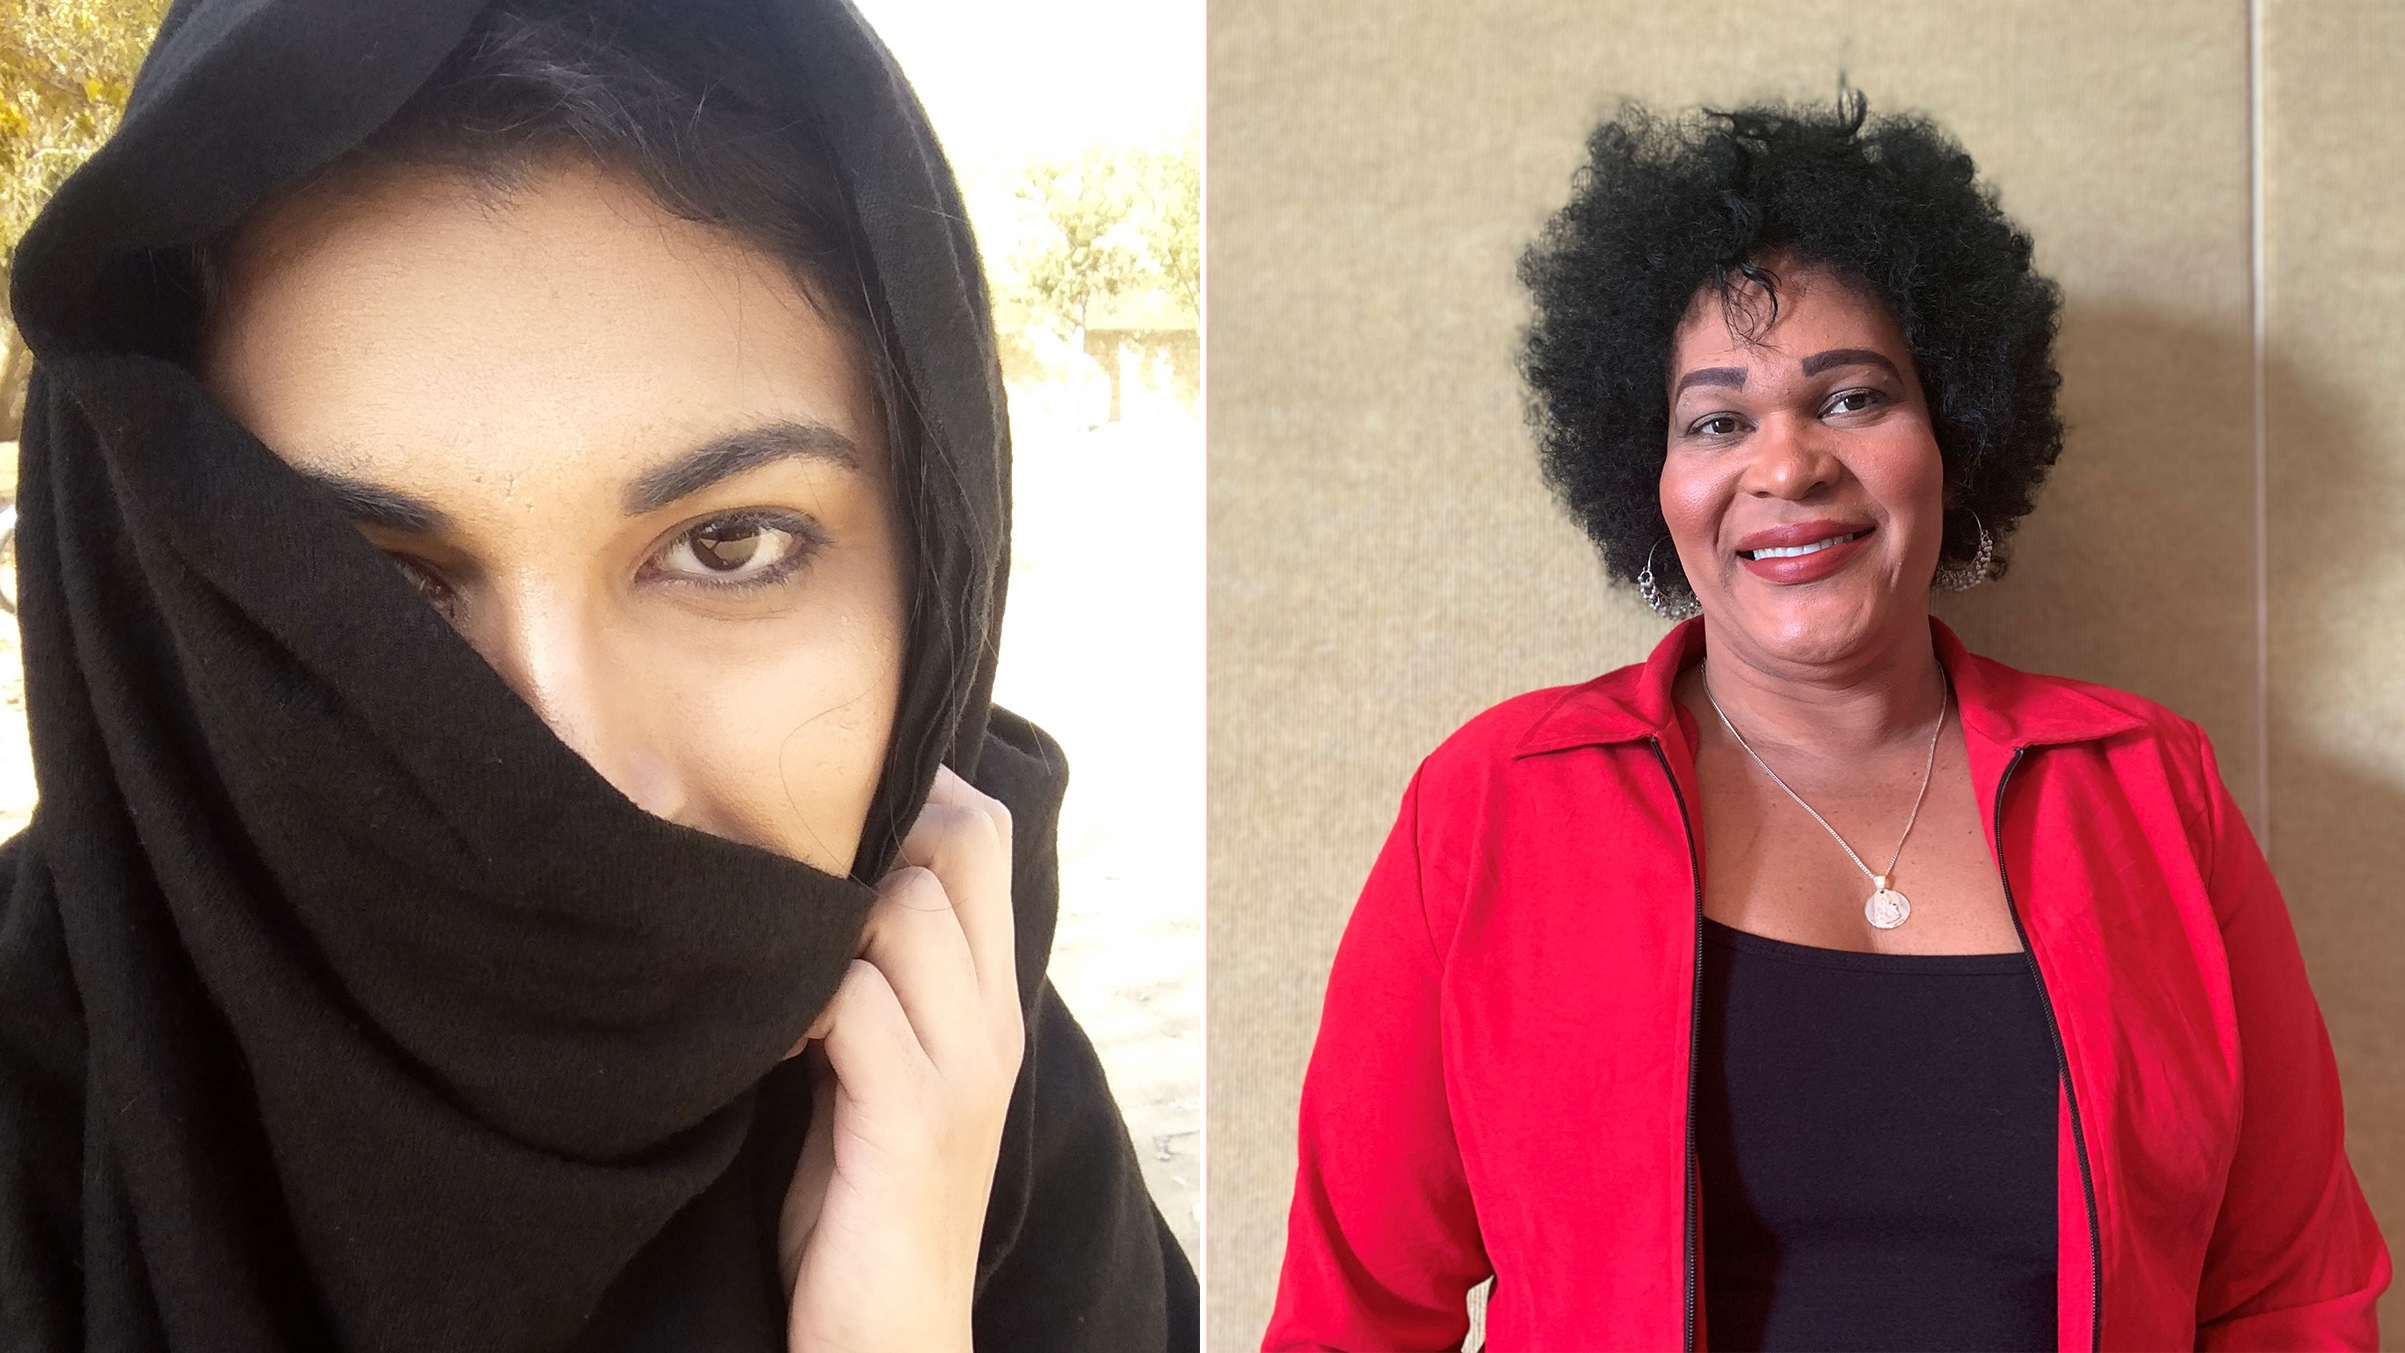 To mark International Transgender Day of Visibility, Amnesty International asked two activists, Mehlab Jameel from Pakistan, and Nairovi Castillo from the Dominican Republic, to share their stories